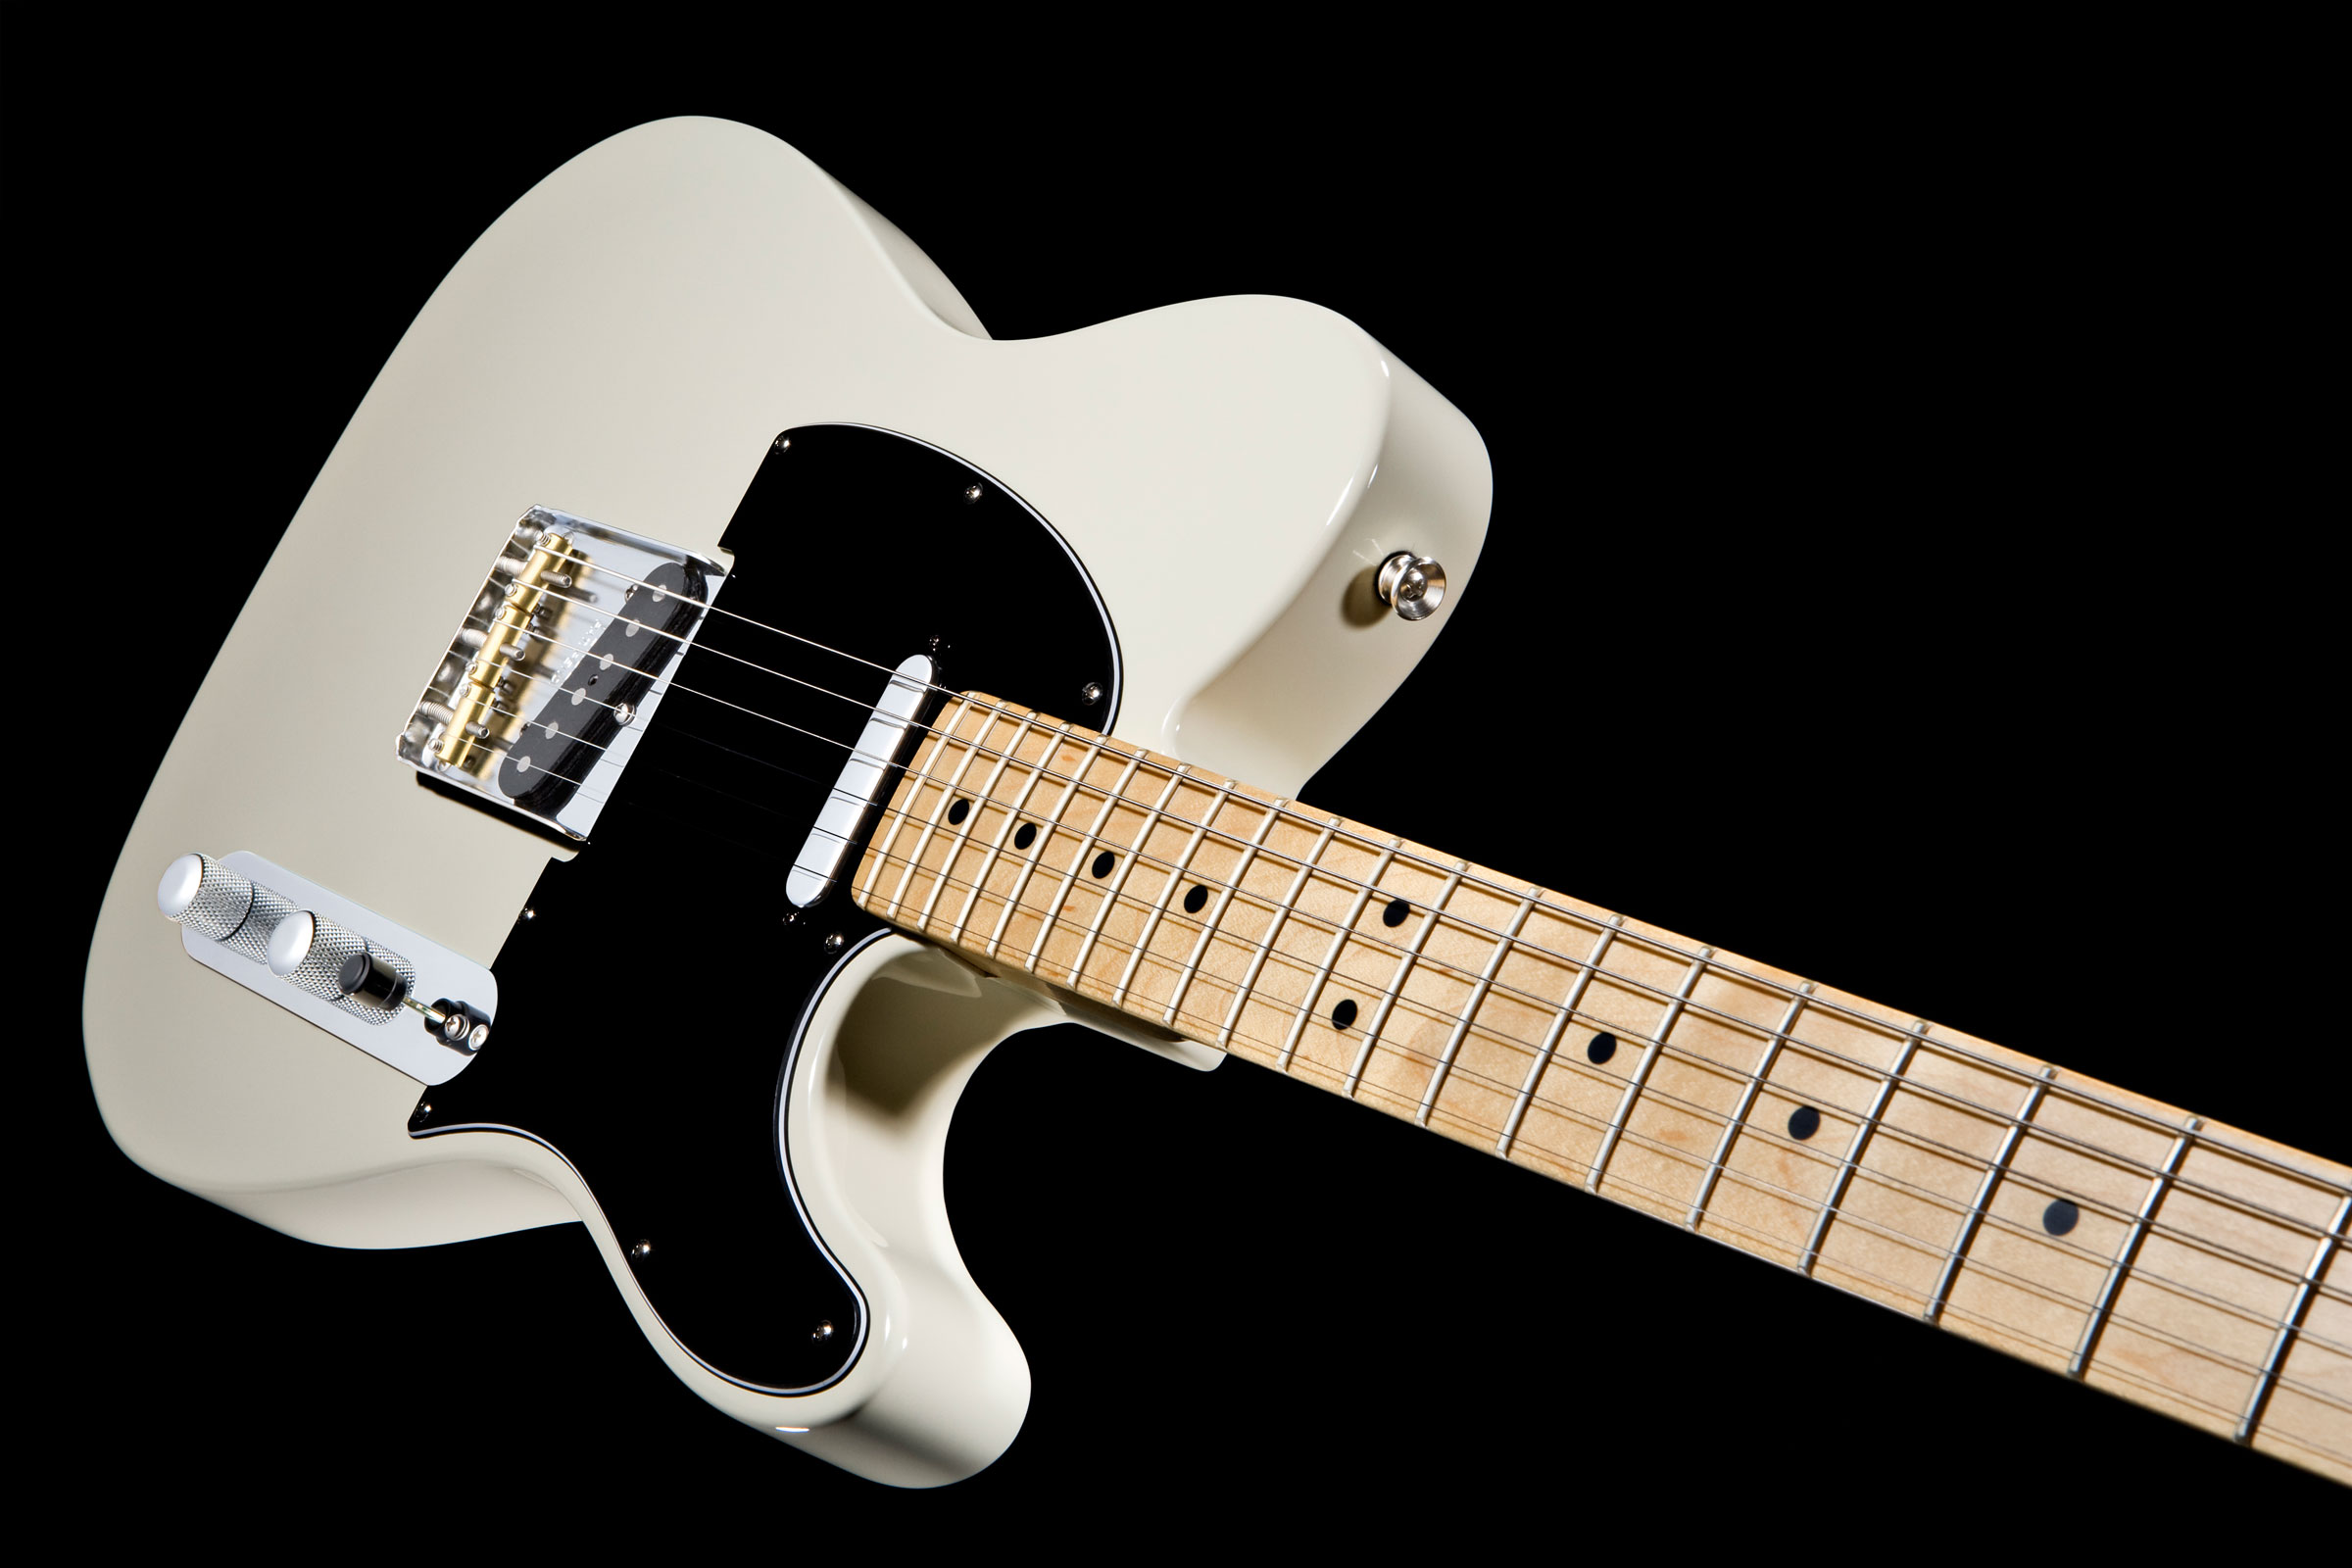 Bridge Finlands Premier Guitar And Bass Blog Diagram Furthermore Lap Steel Together With Electric Fender American Special Telecaster Olympic White Maple004 Posted In Basic Knowledge Classic Models